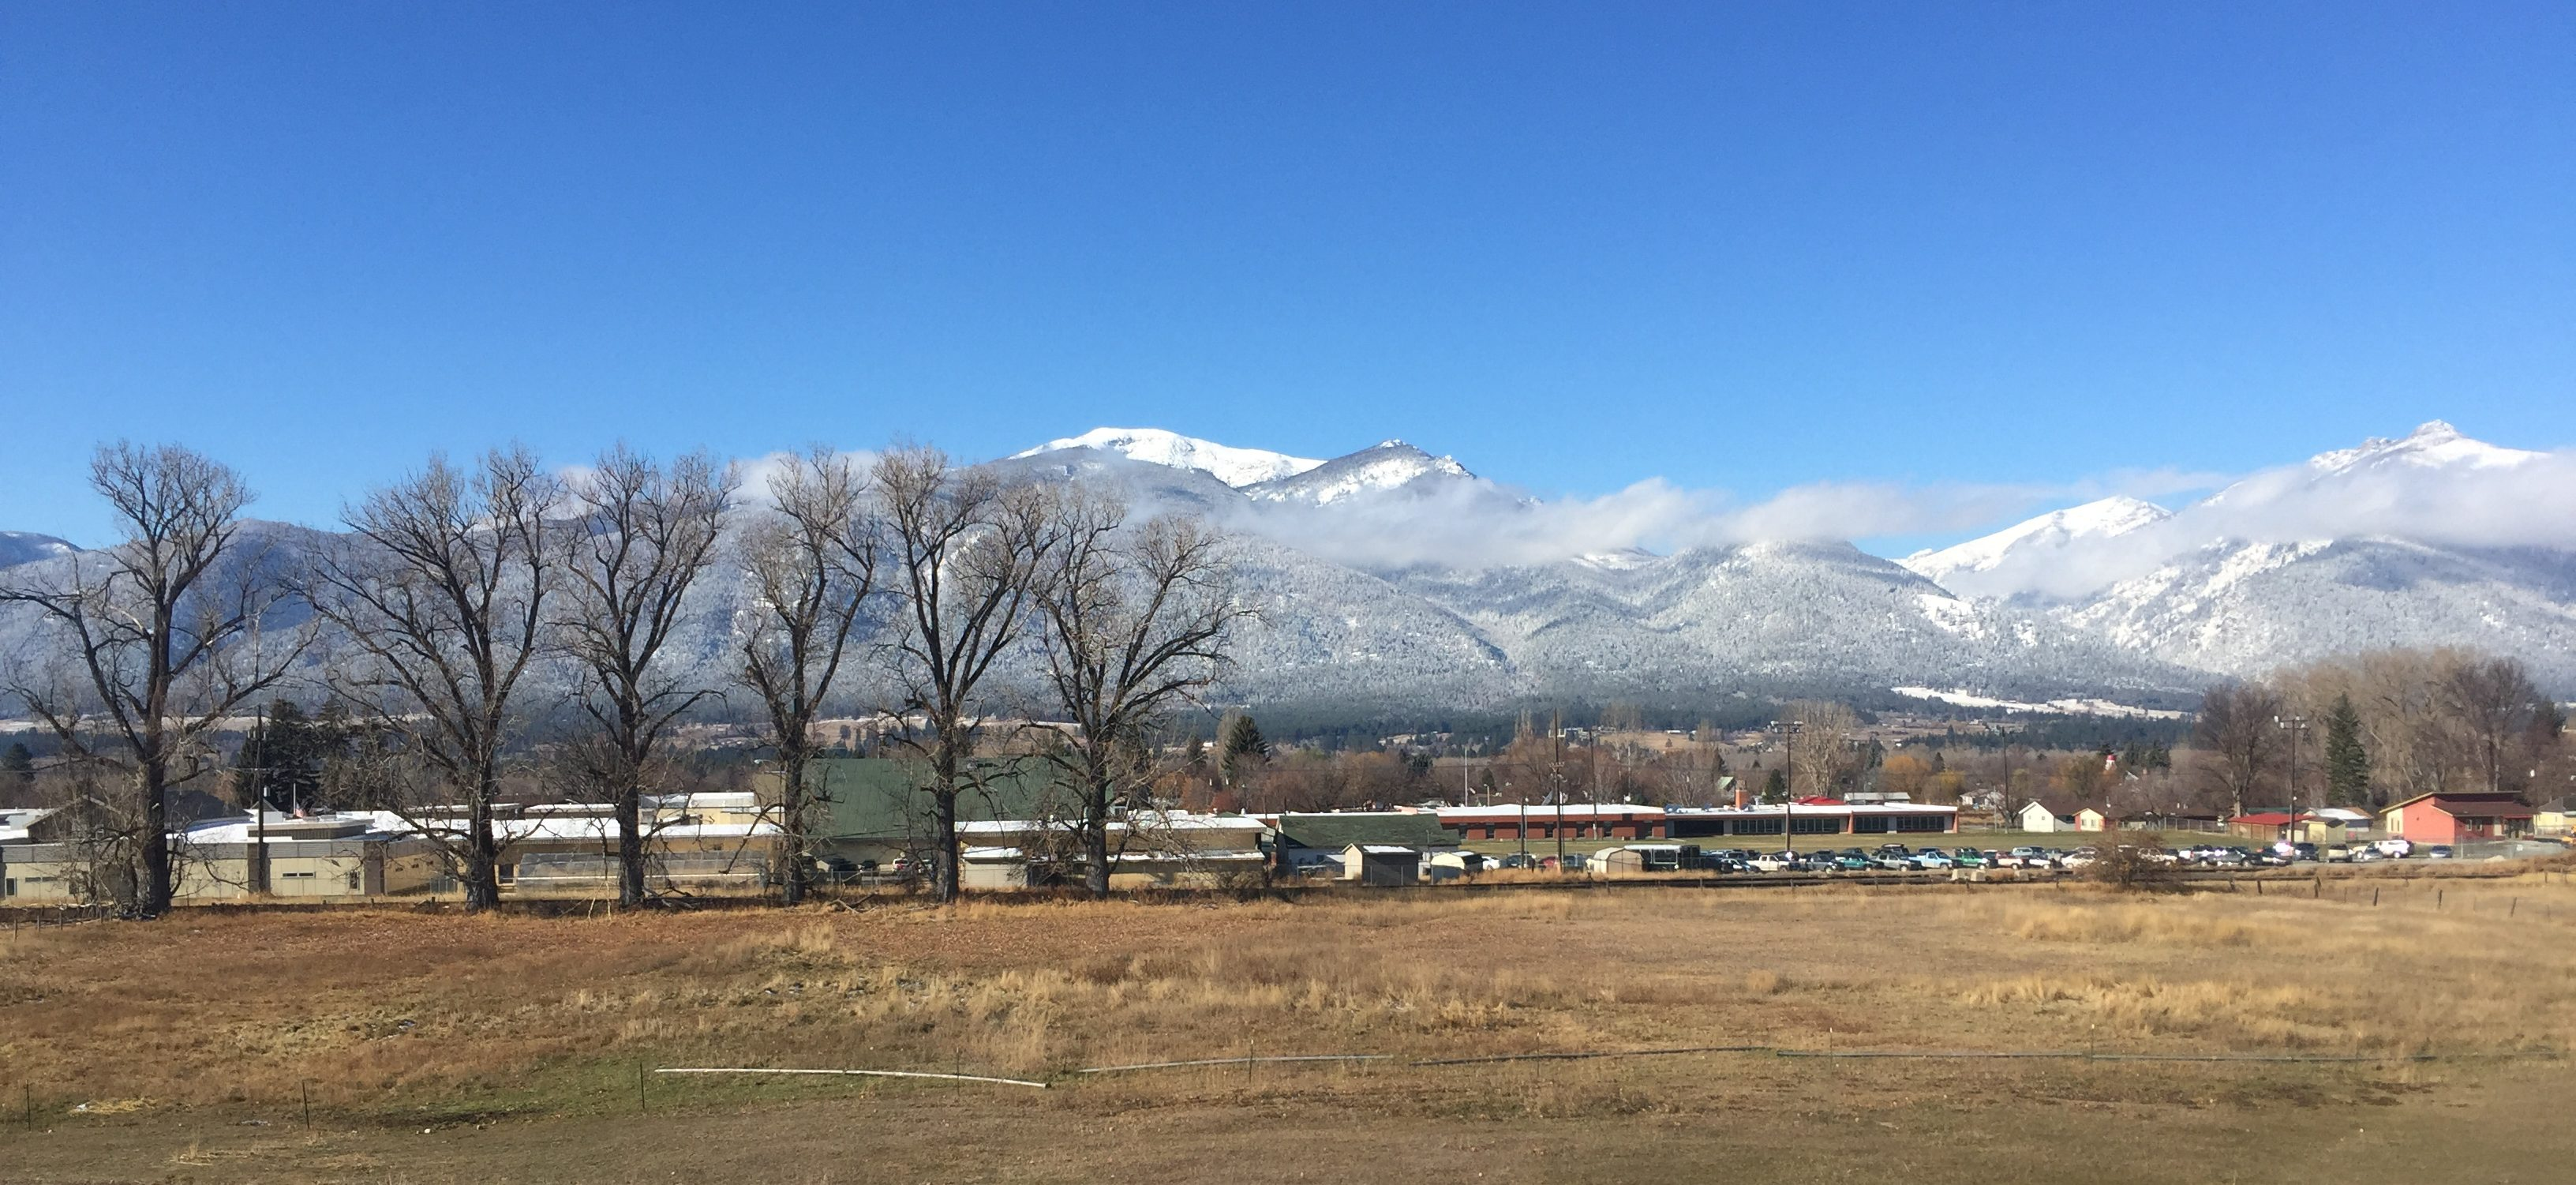 Photo of Stevensville Schools with St. Mary Peak in the background, taken from the High School Football stadium.